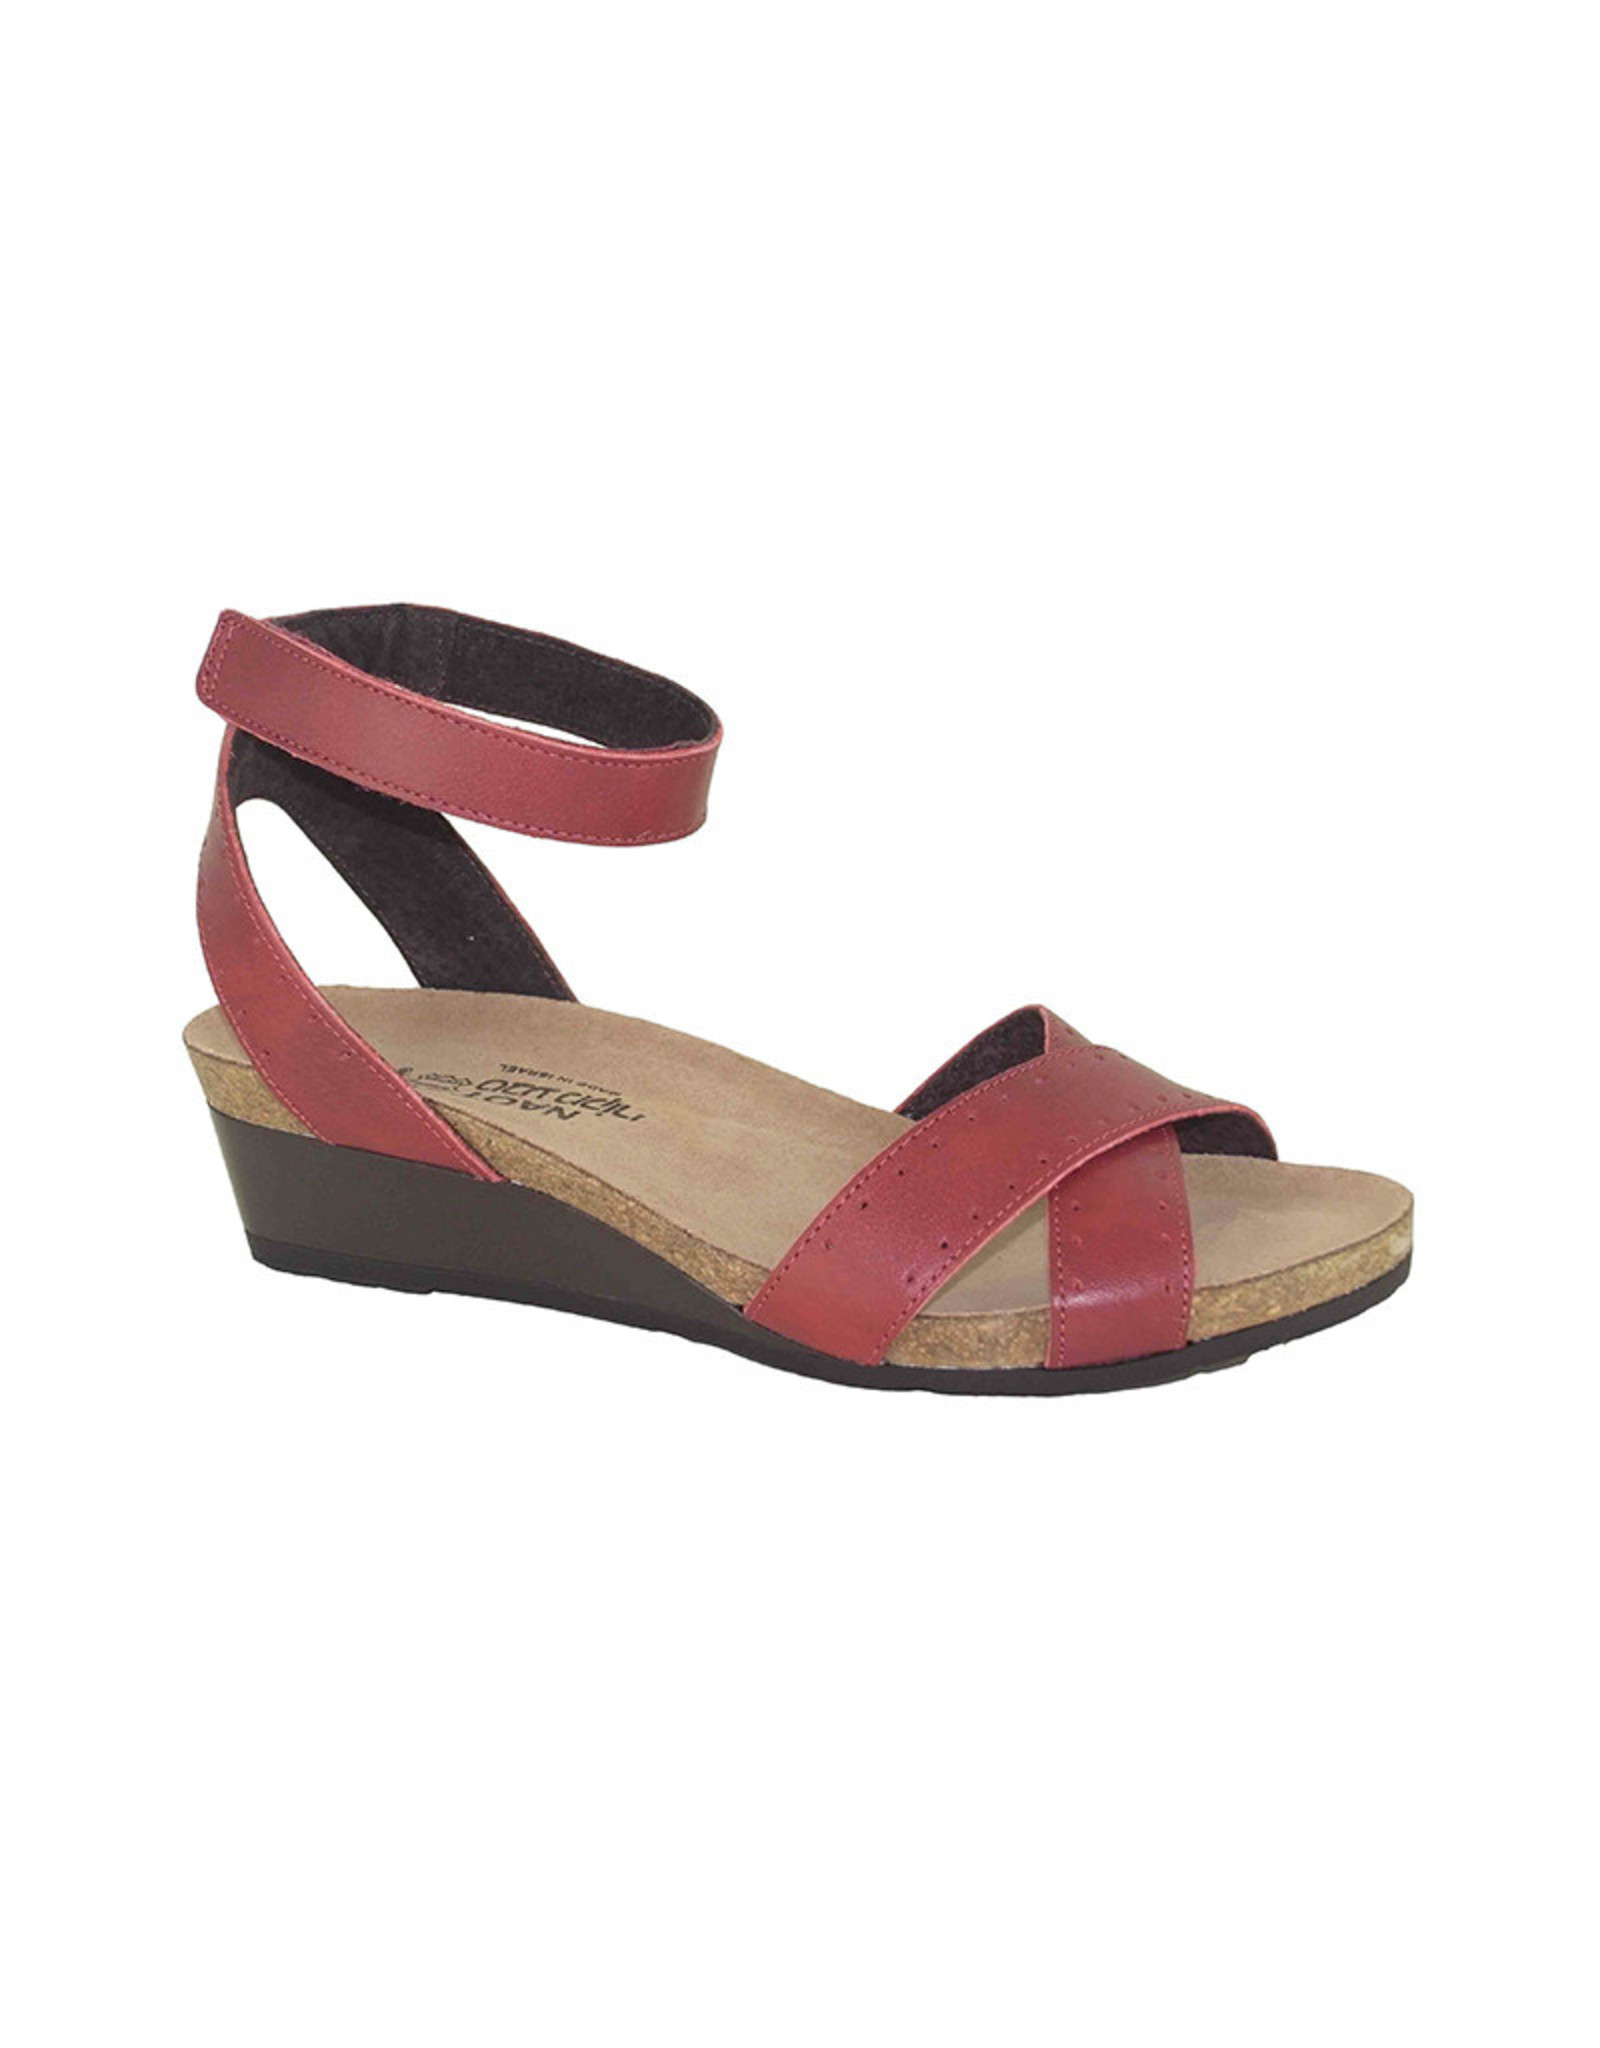 Naot Footwear Wand in Berry Red Combo